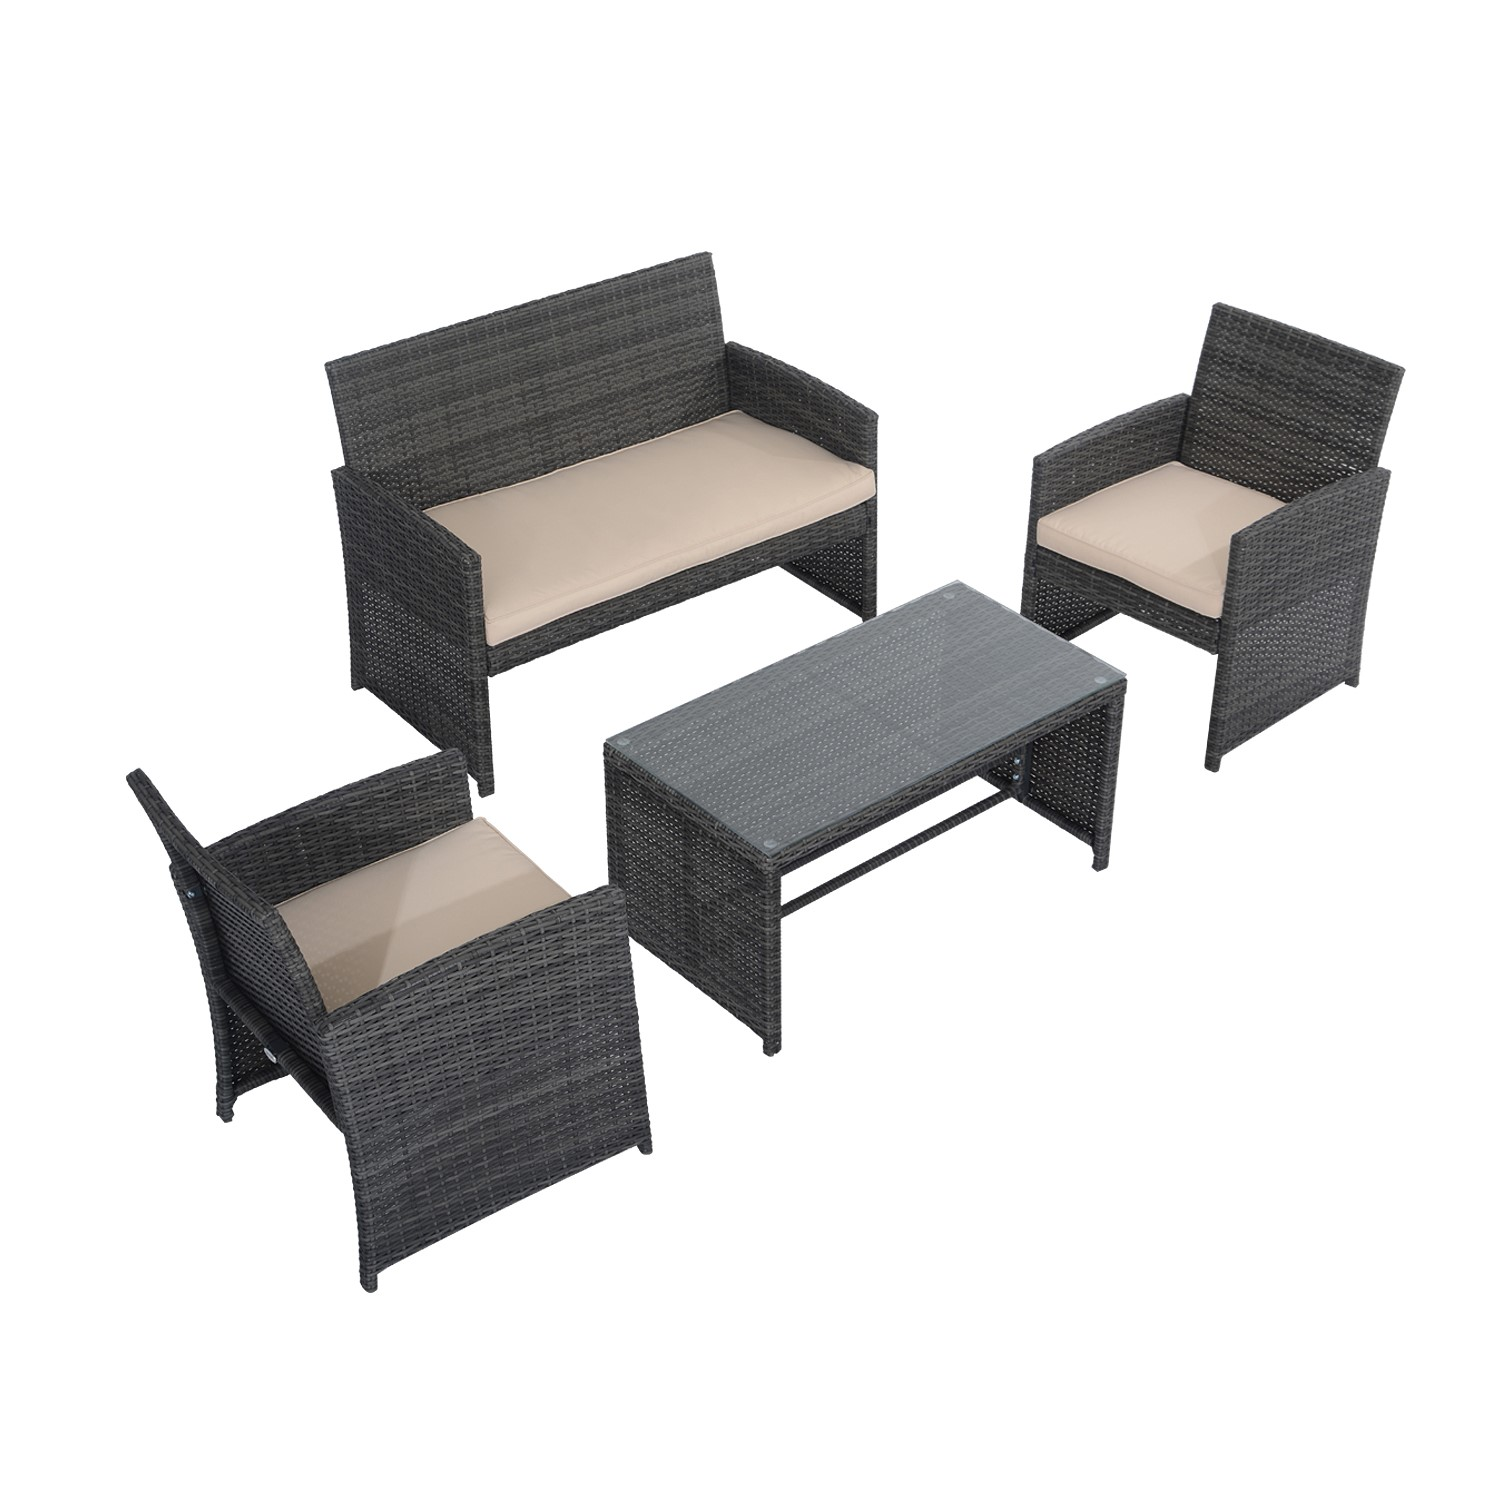 Outsunny Set 4 PCs Loveseat 2 Armchairs Coffee Table Metal Garden Furniture, Rattan 108.5x61.5x76.5 Cm